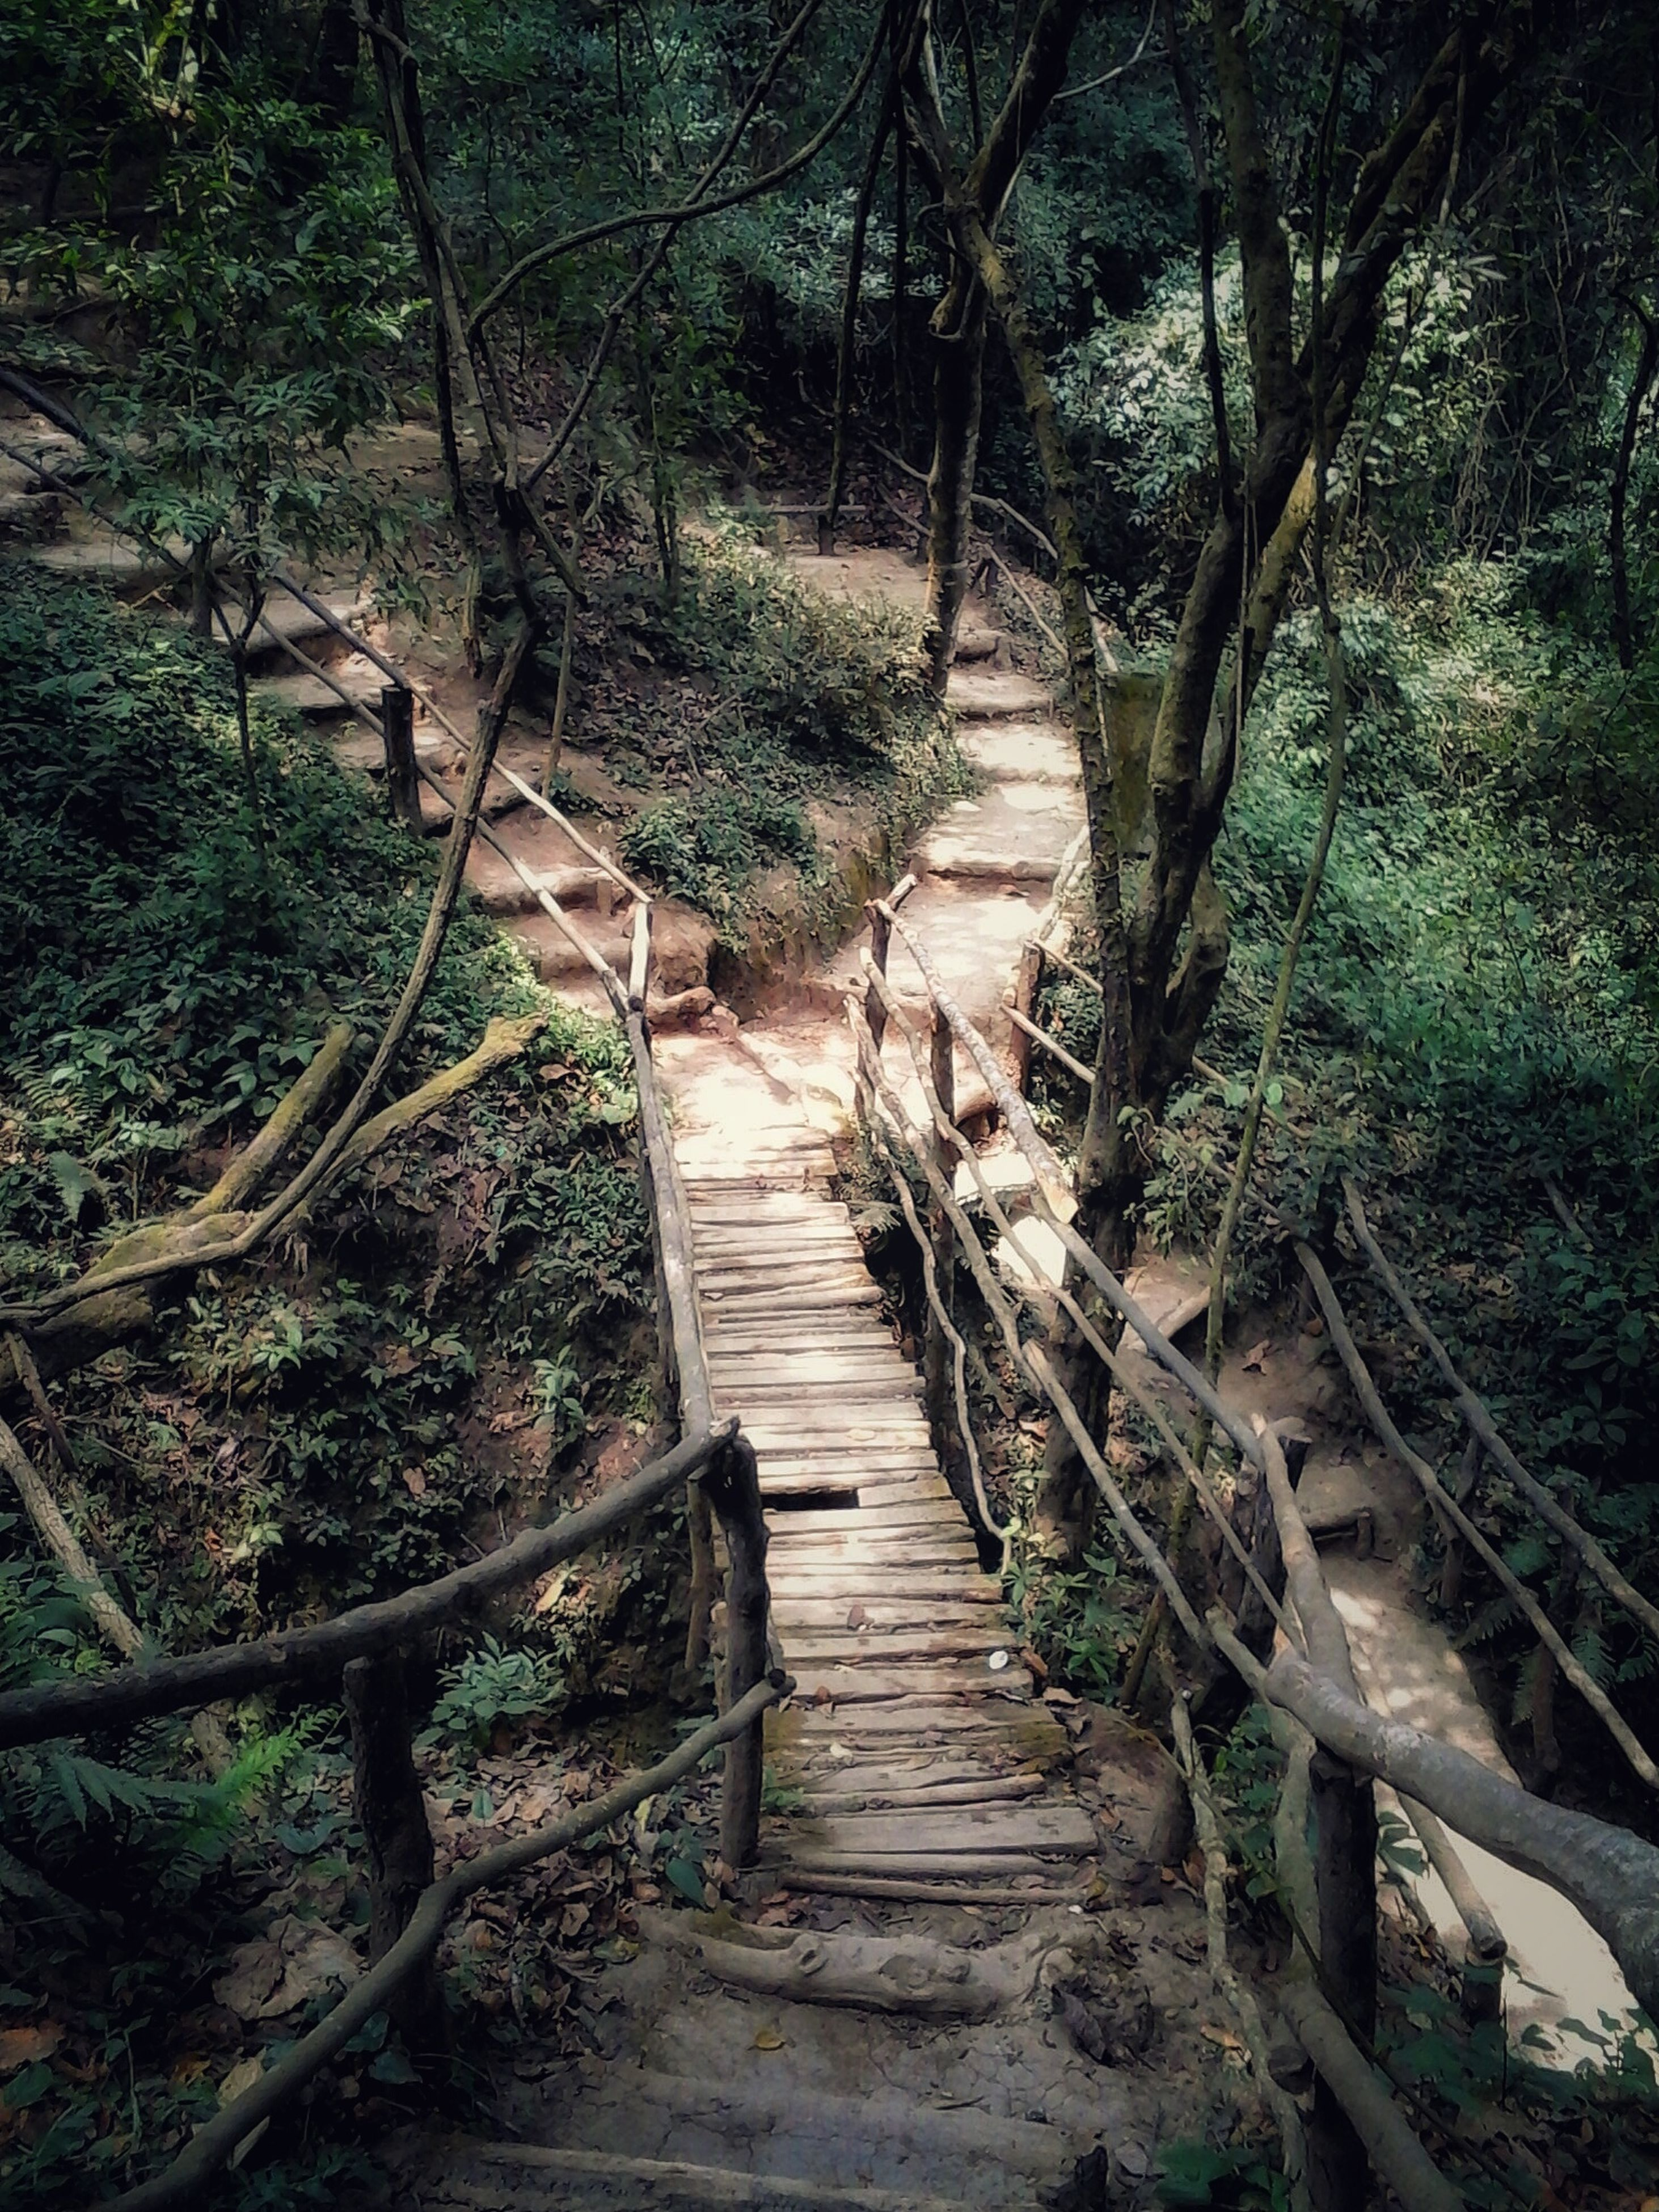 the way forward, steps, tree, wood - material, forest, tranquility, staircase, steps and staircases, plant, narrow, nature, railing, growth, boardwalk, tranquil scene, wood, walkway, day, outdoors, no people